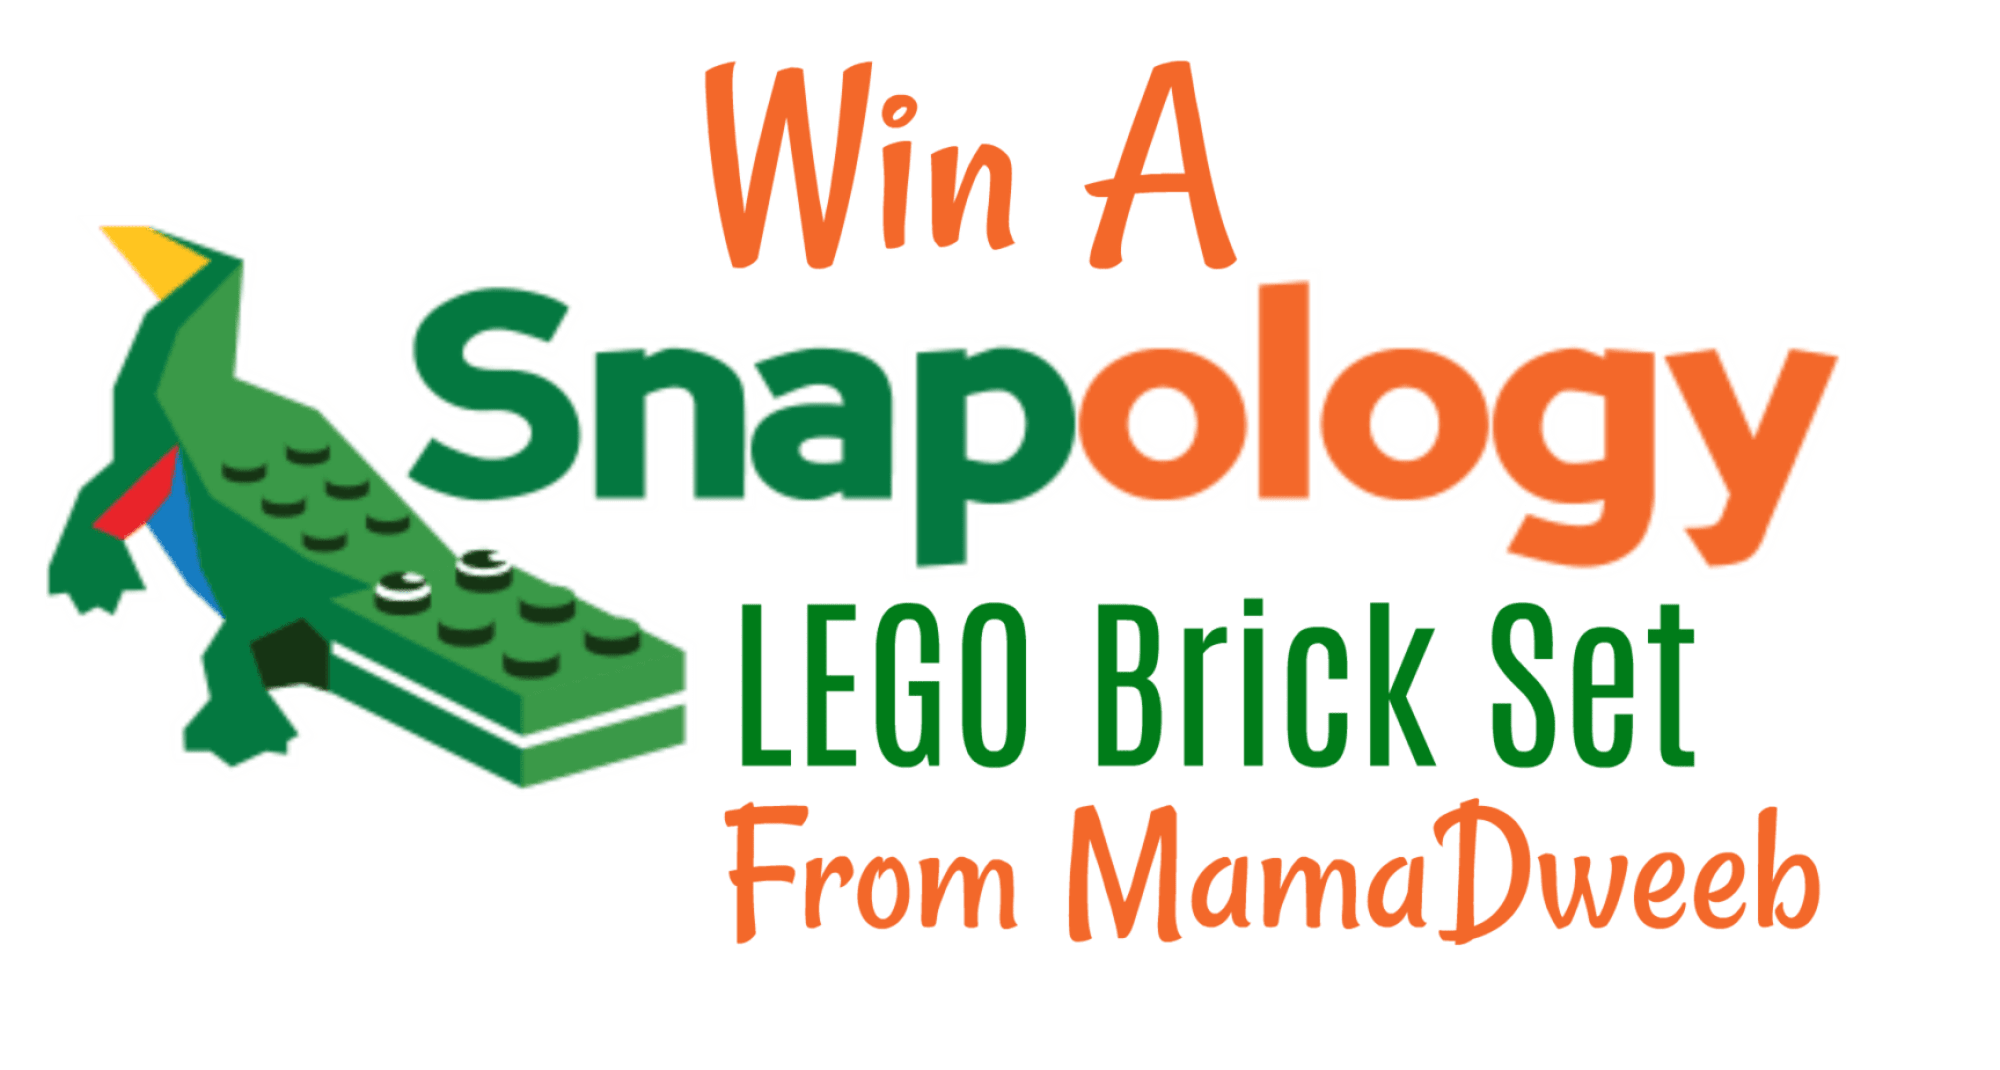 Win A Snapology LEGO Brick Set of Gator